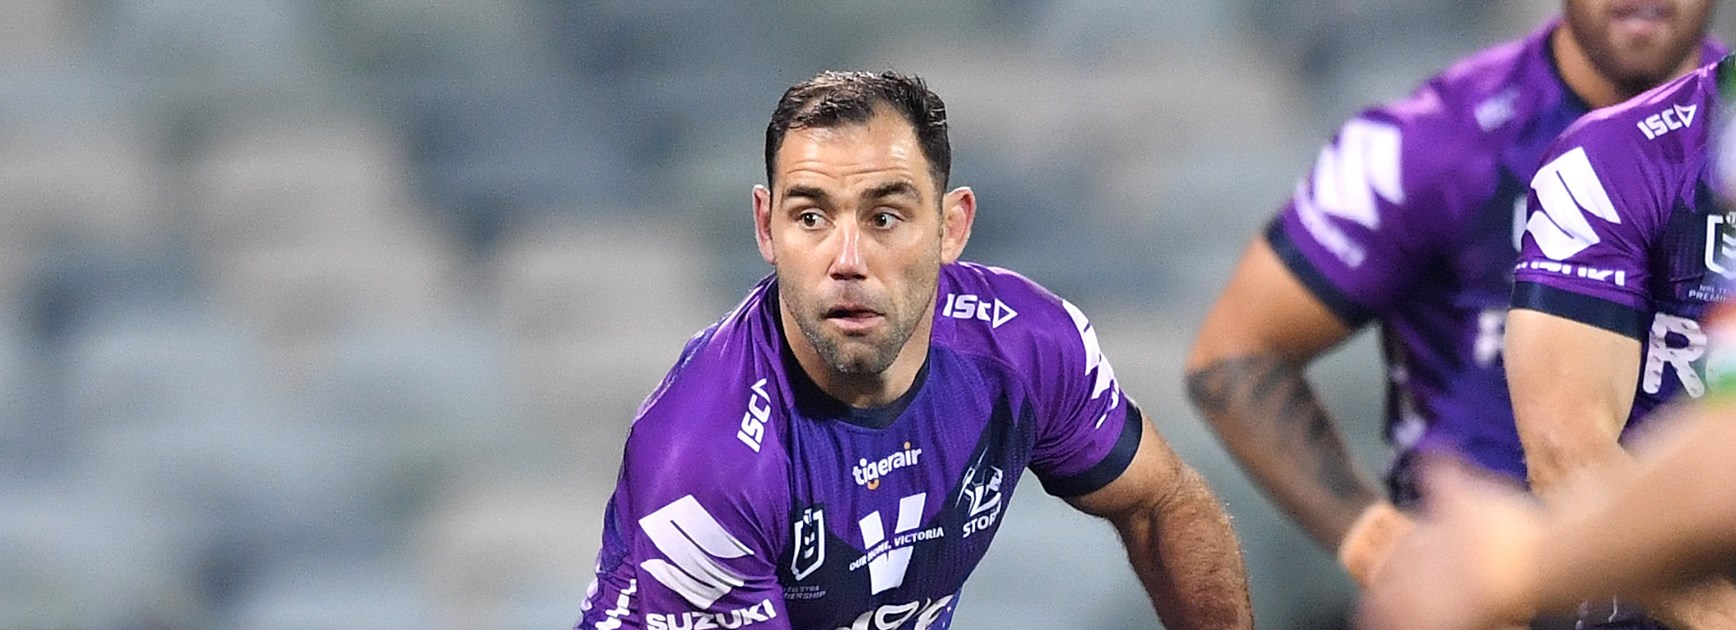 NRL Players' Poll: Part 1 - Best player, positions, coach, captain and more